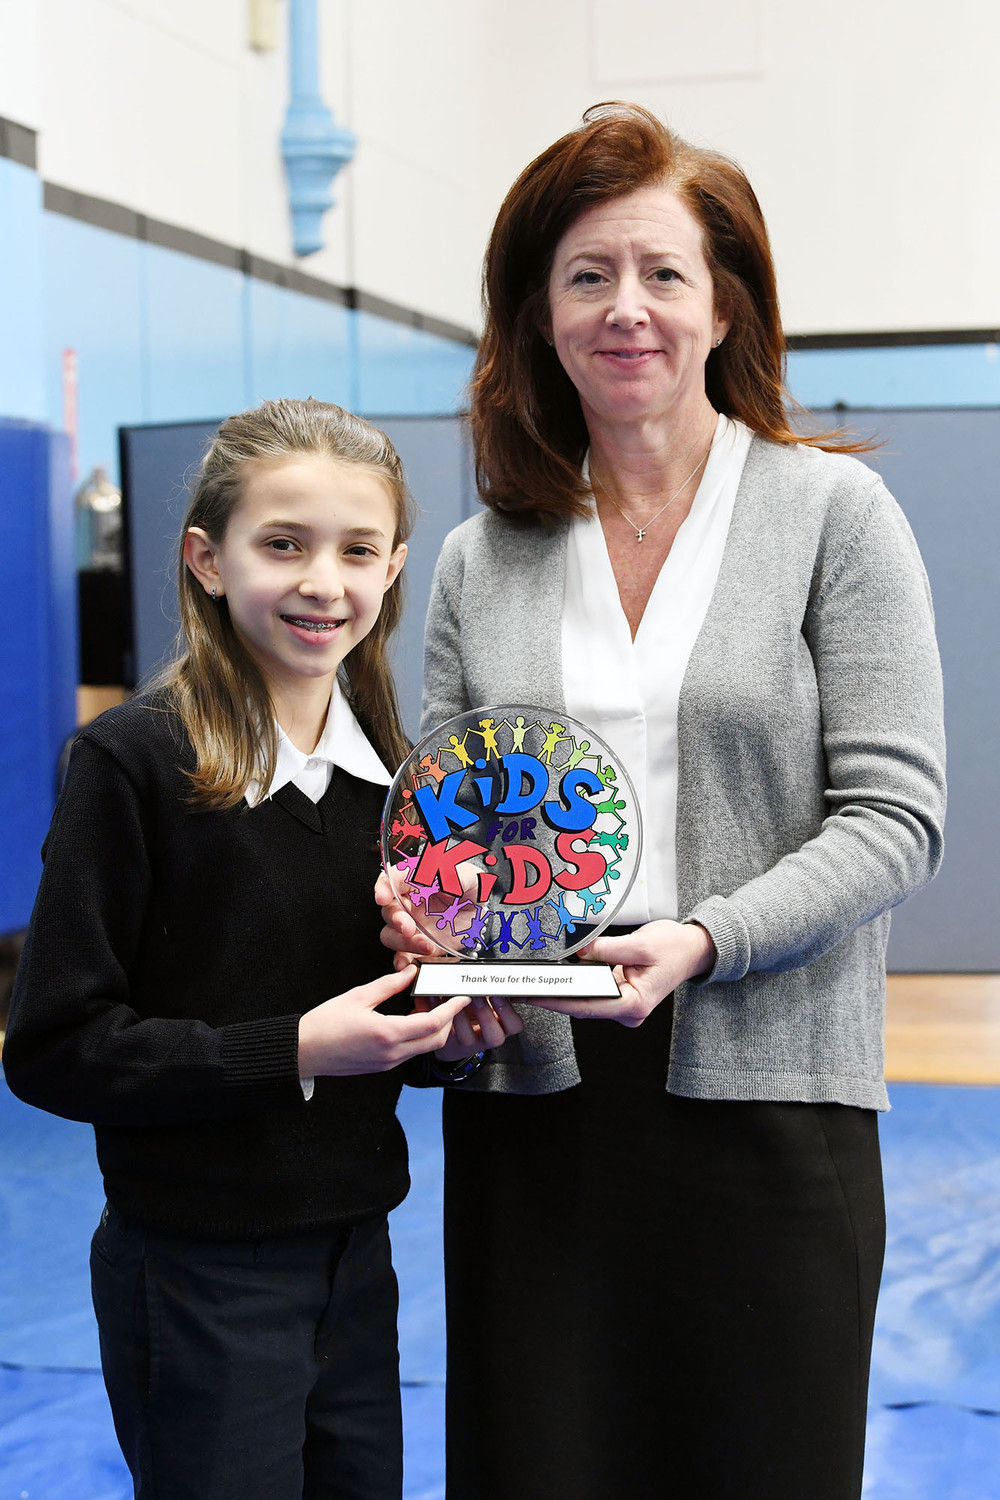 Seventh-grader Sofia Biondi presents the Kids for Kids thank you gift to school principal Tara Hynes.